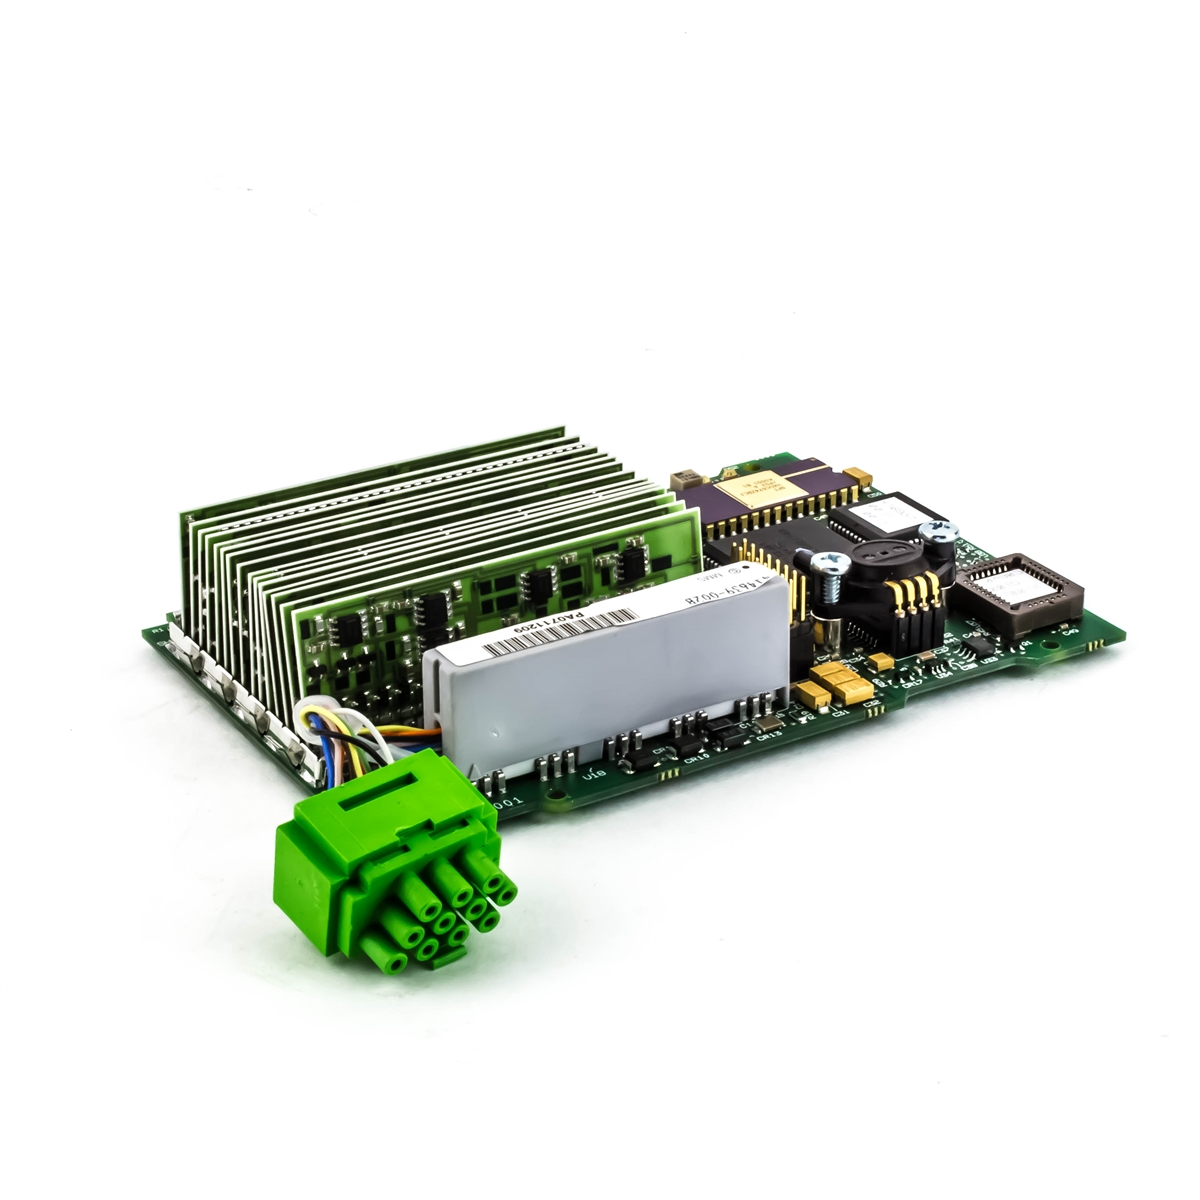 Acquisition Processor Pcb Aquisition Of Electronic Circuit Boards Pcbs And Prototype Board Larger Photo Email A Friend